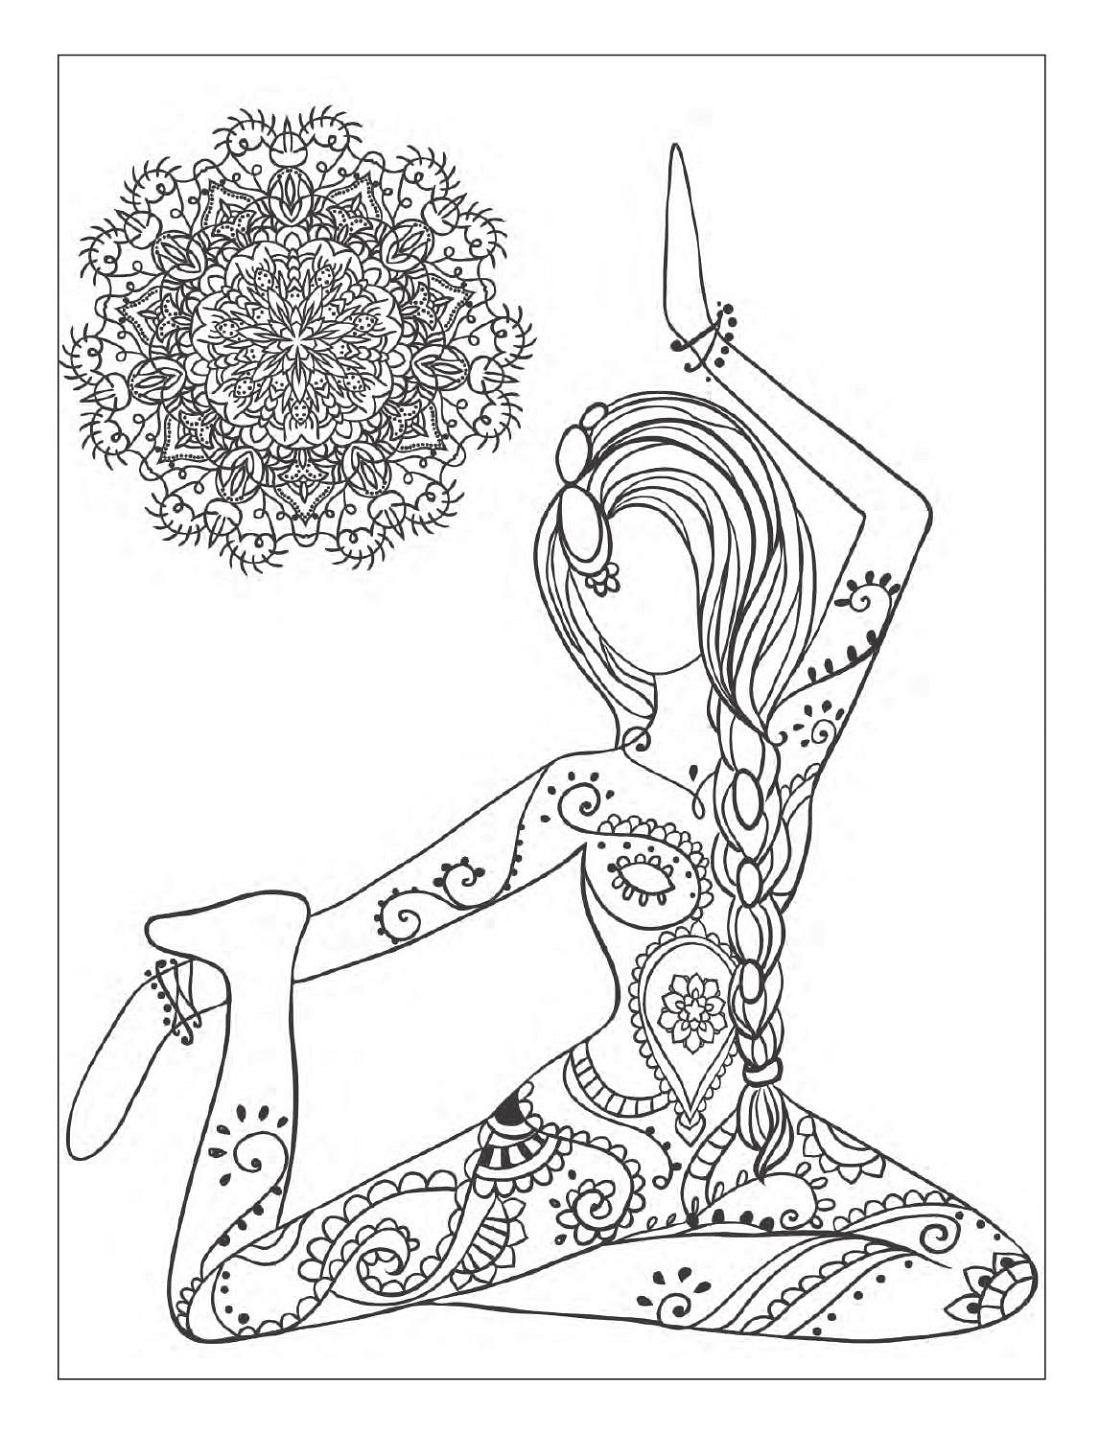 Yoga Coloring Pages For Adults